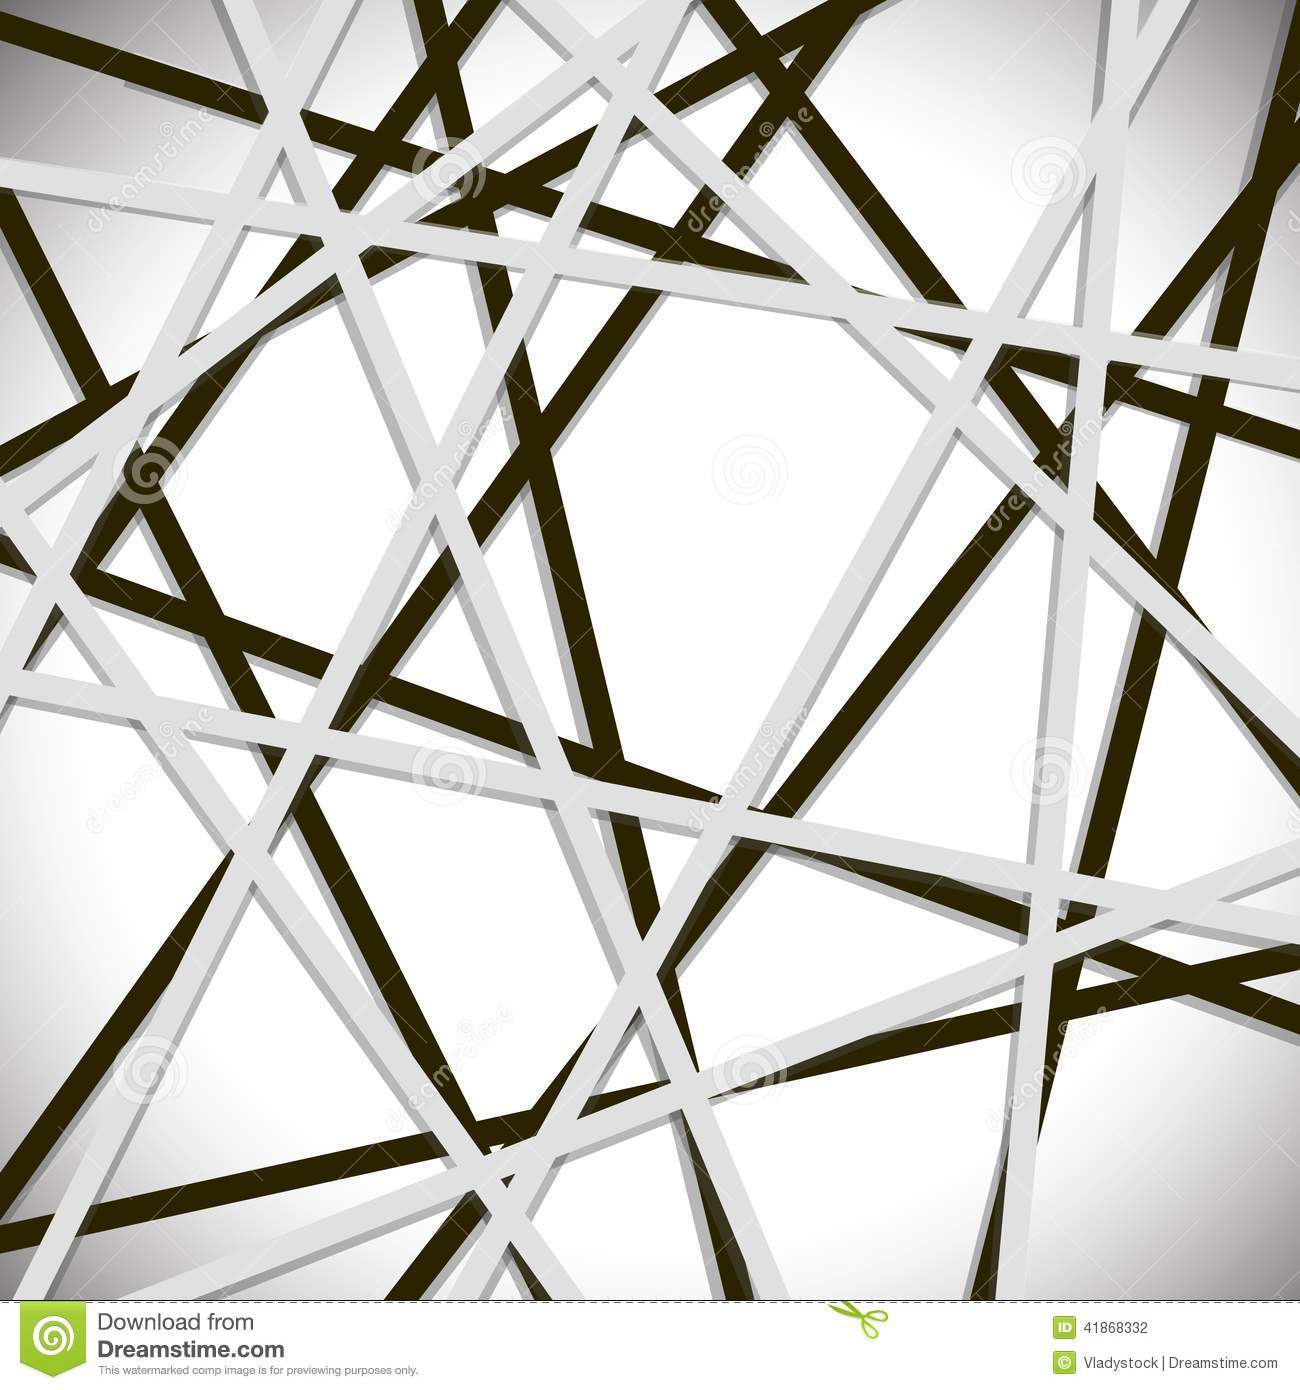 Overlapping Lines Background Stock Vector - Image: 41868332